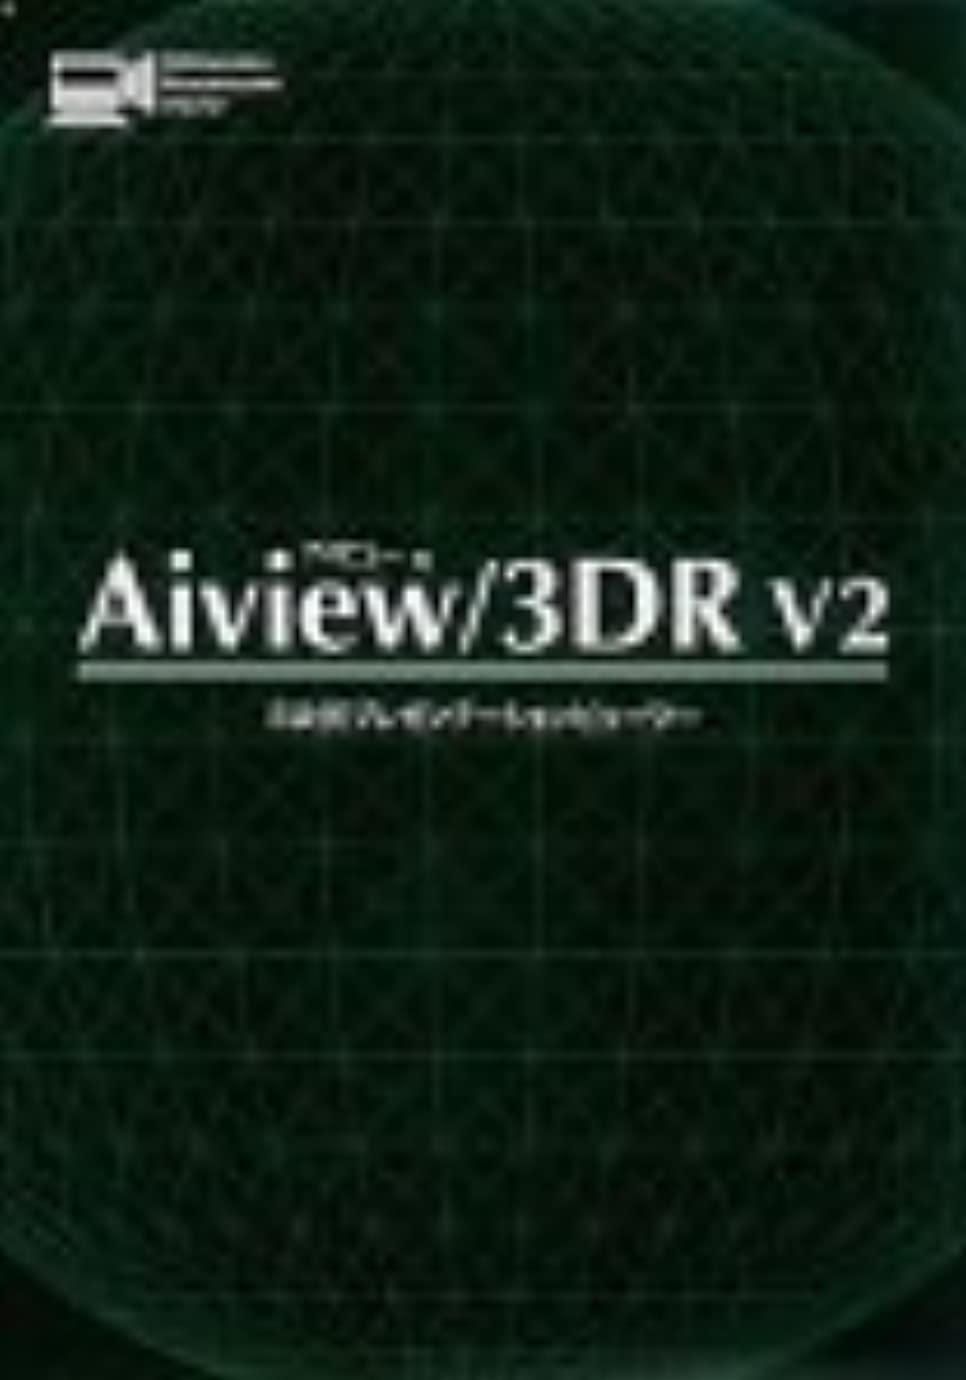 Aiview/3DR V2 バージョンアップキット